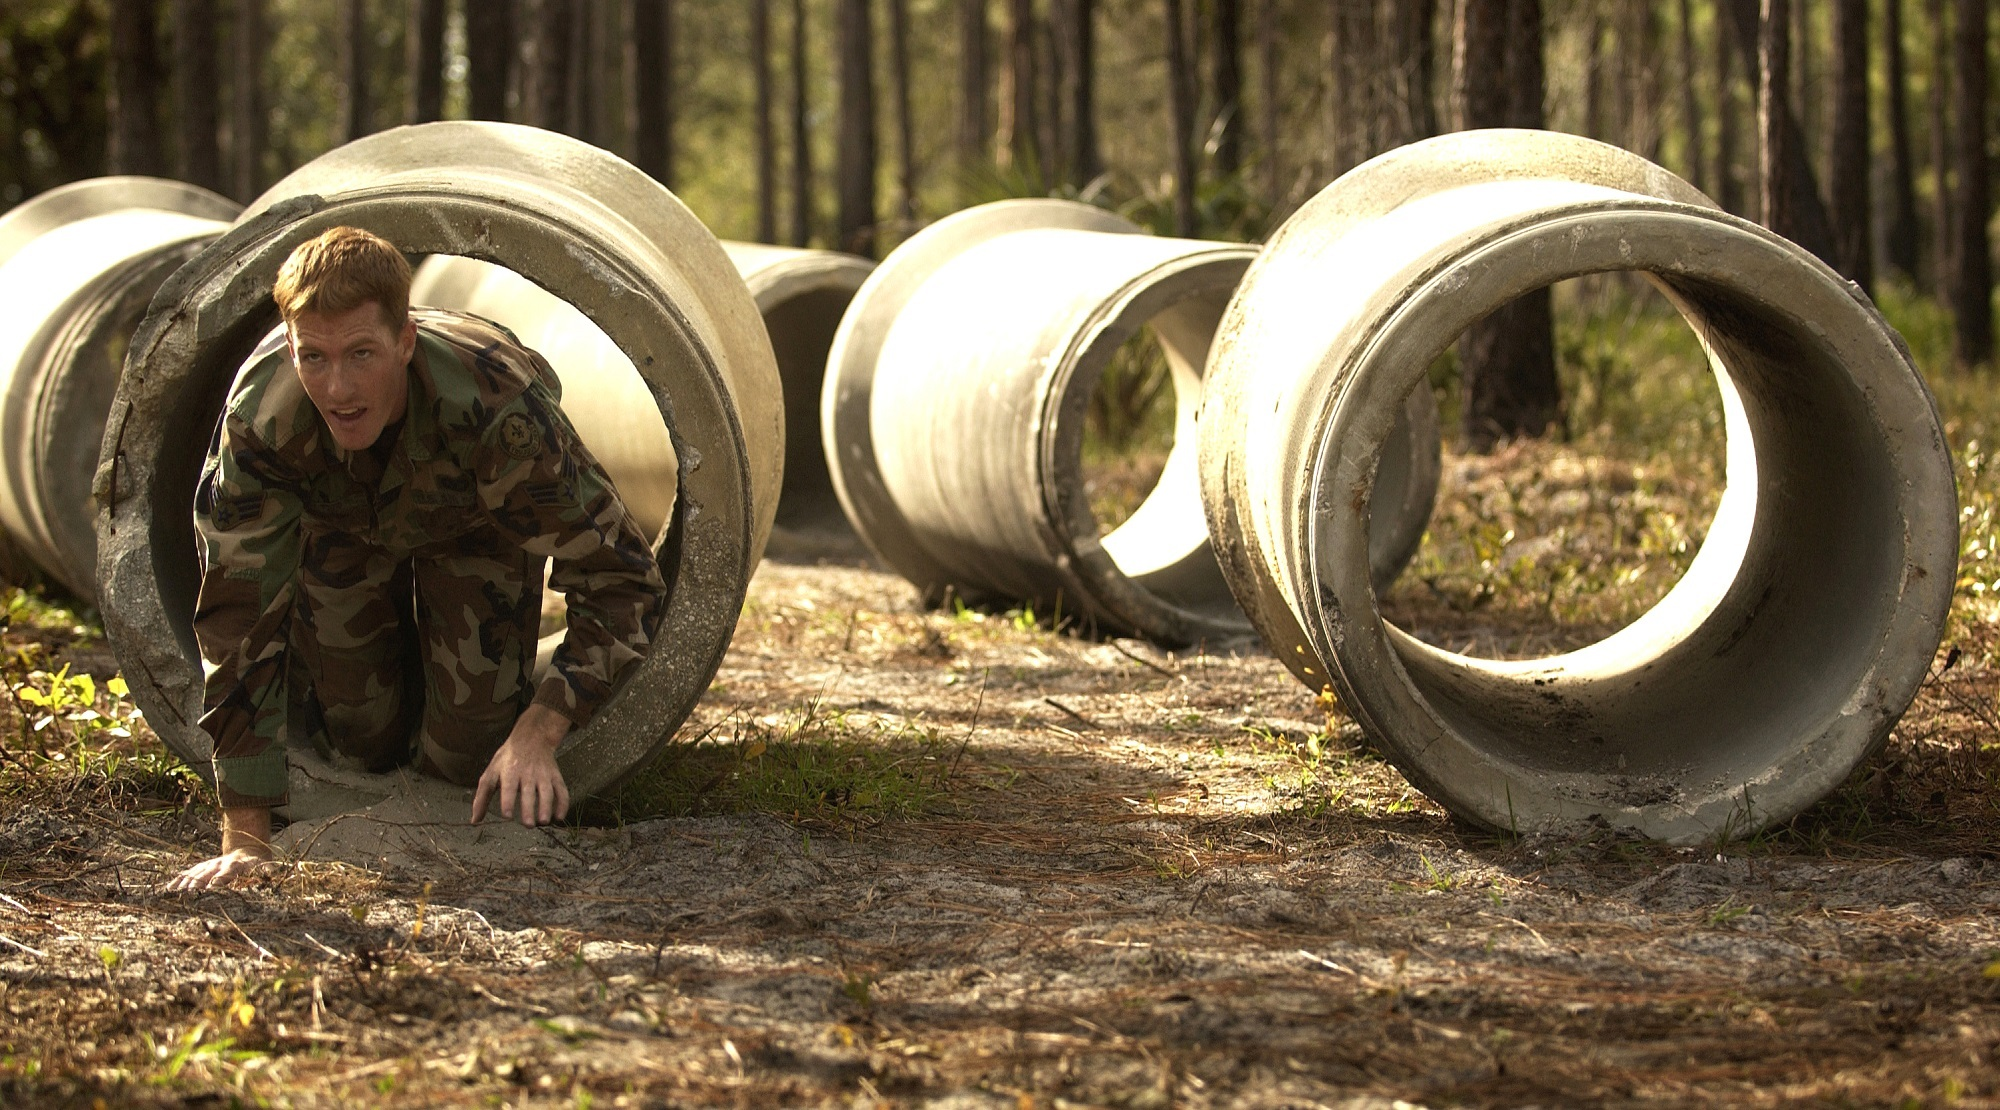 Chinese military assault course - Xmudder. Large Header Image